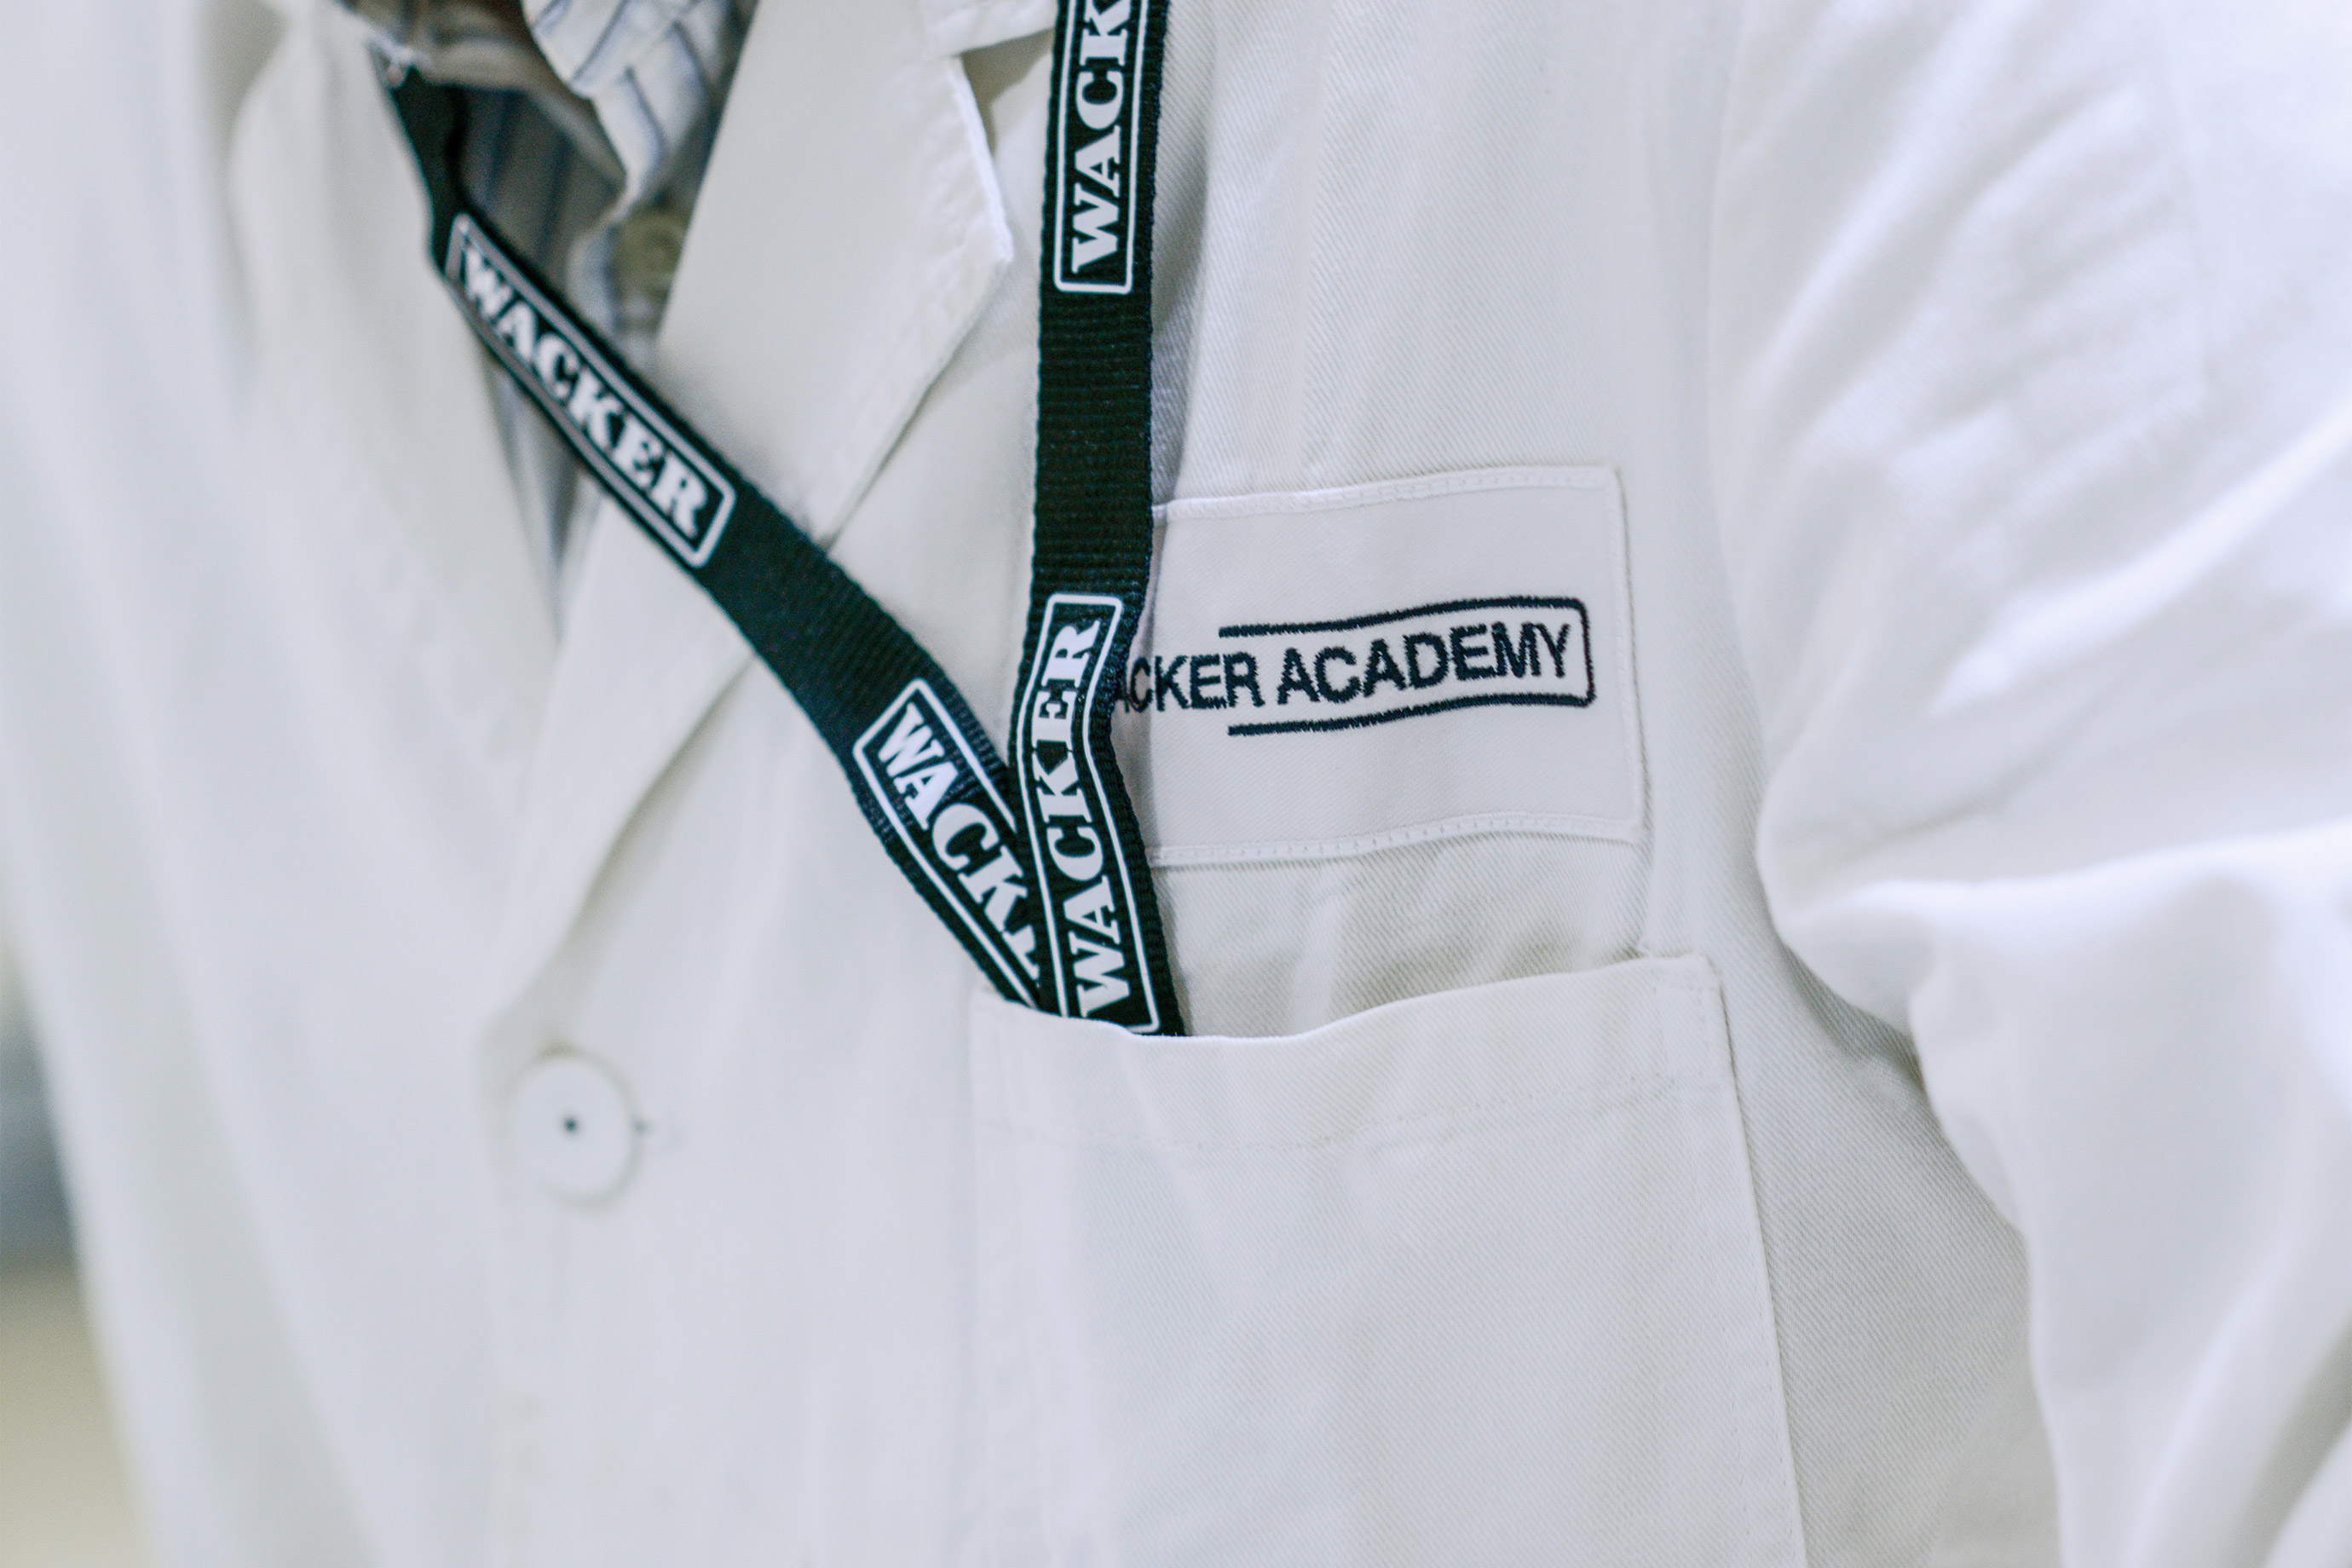 Lab coat with WACKER ACADEMY logo